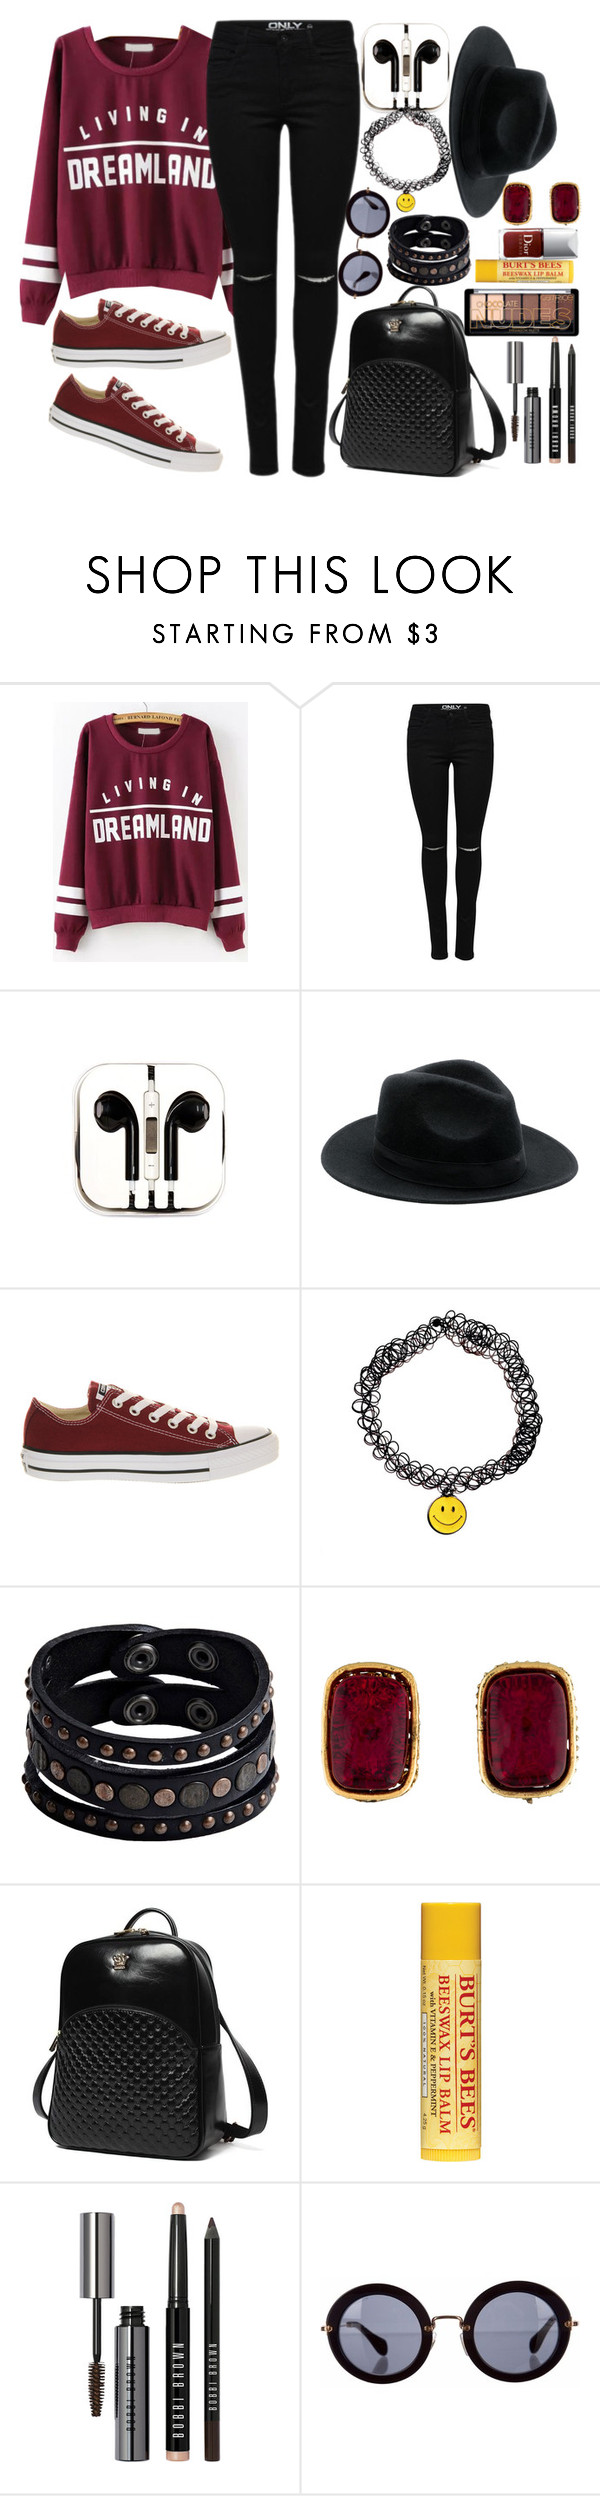 """""""Happily Never After"""" by geekyravenclaw ❤ liked on Polyvore featuring moda, PhunkeeTree, Converse, Replay, Chanel, Princess Carousel, Bobbi Brown Cosmetics y Miu Miu"""